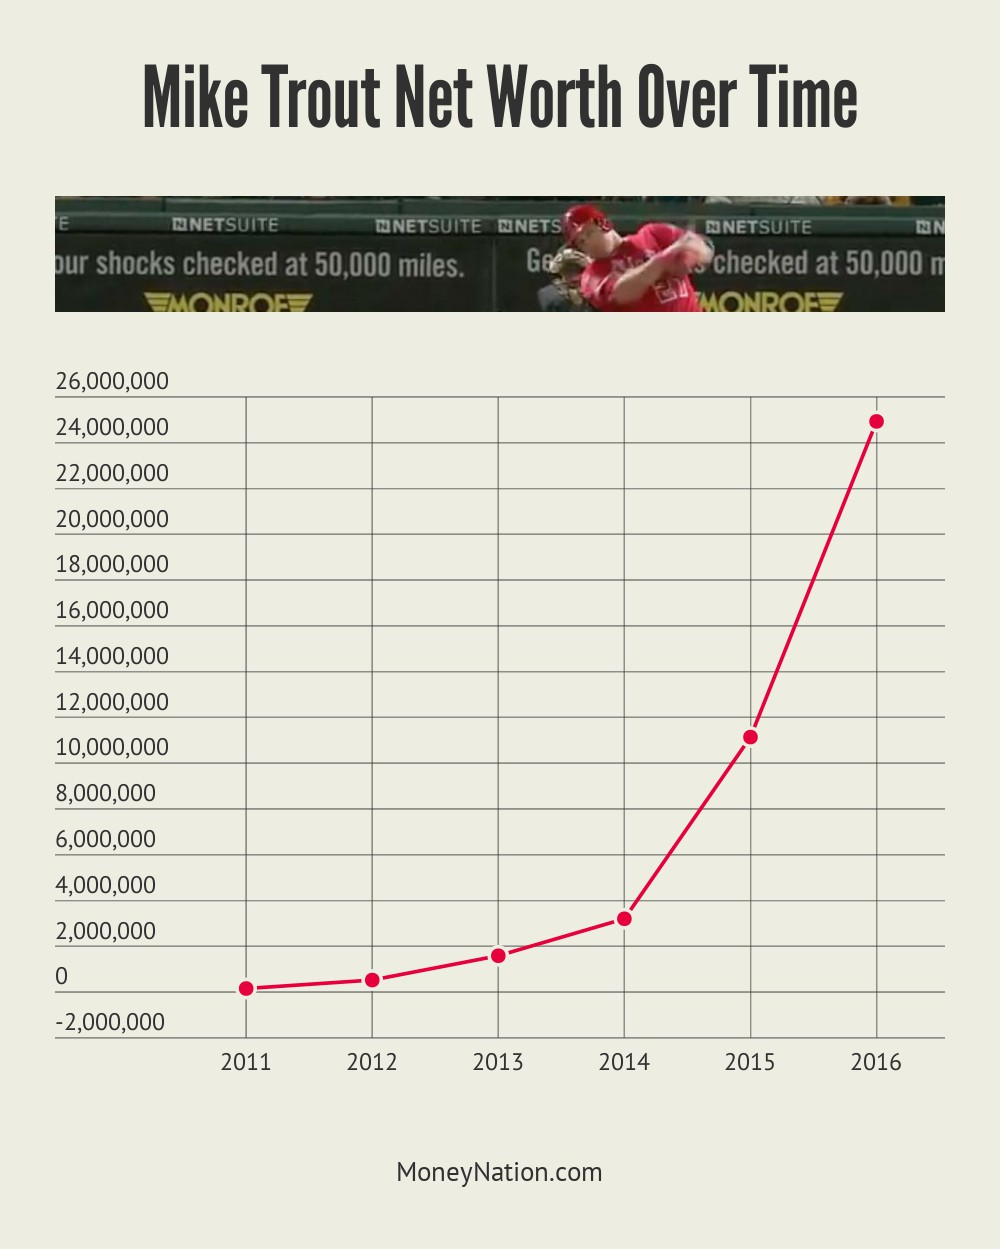 Mike Trout Net Worth Over Time